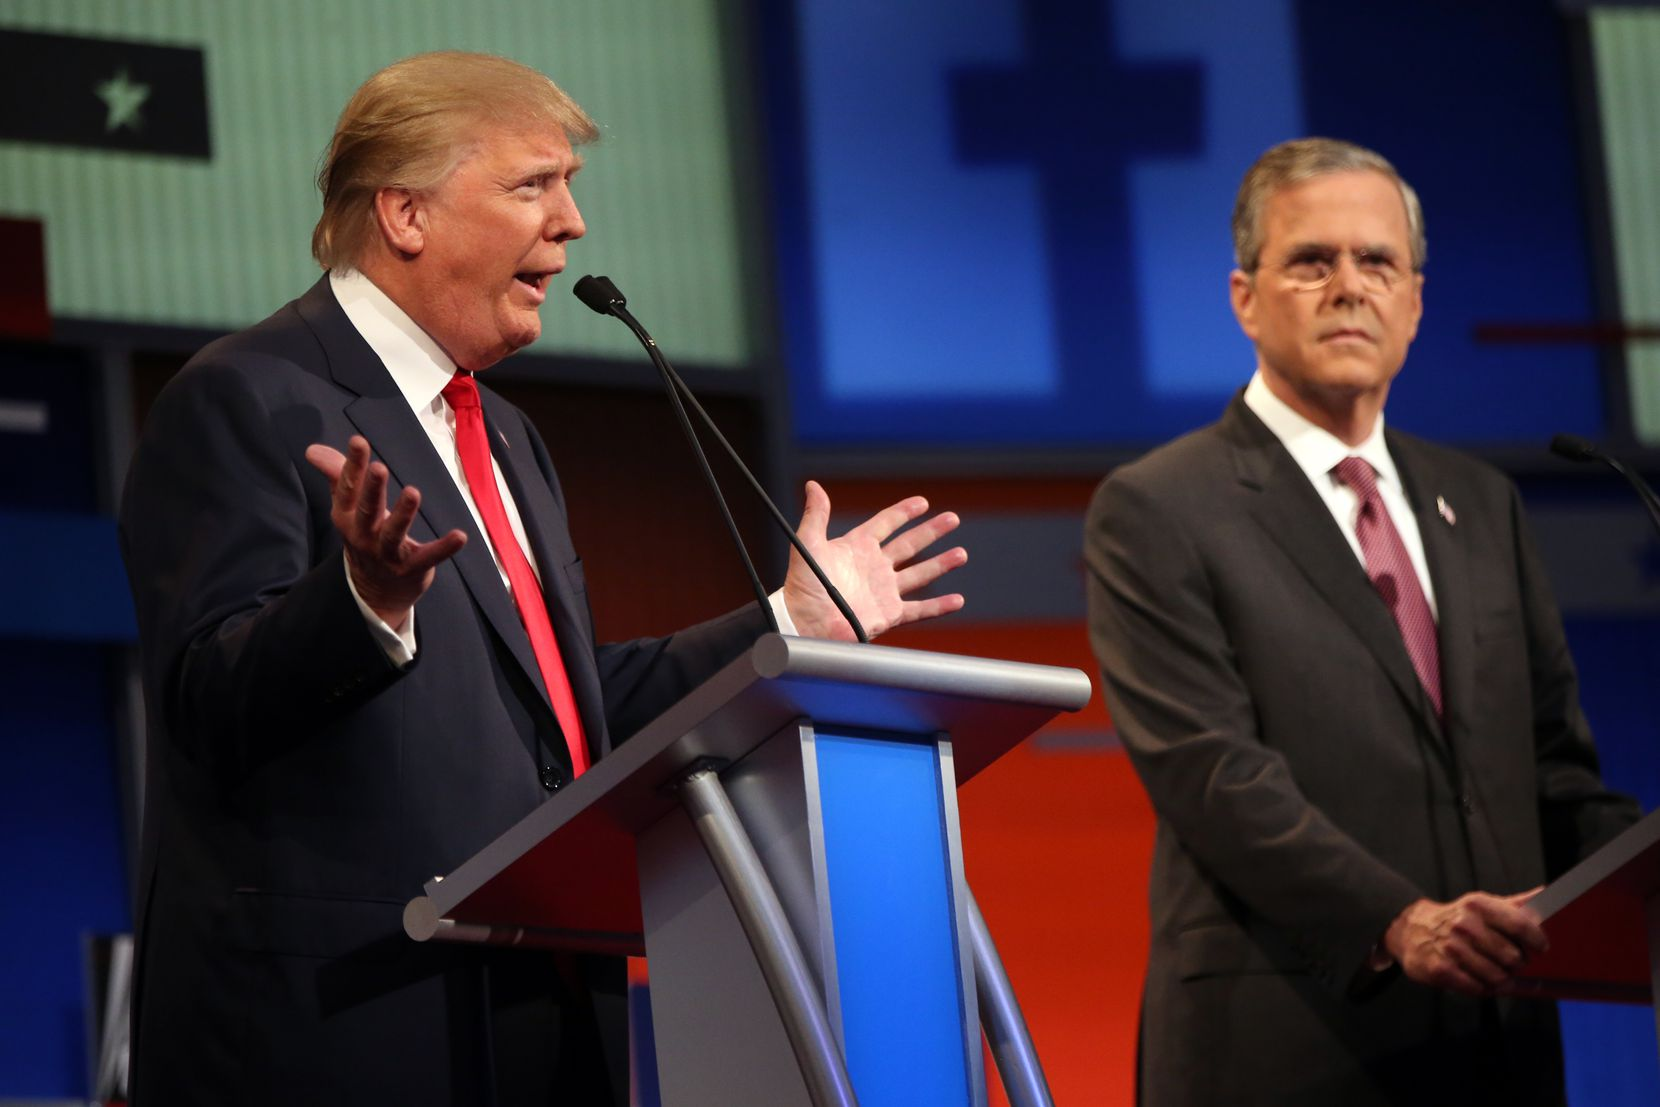 Donald Trump and Jeb Bush compete in the Fox News Channel Republican presidential debate at Cleveland's Quicken Loans Arena on Aug. 6, 2015.